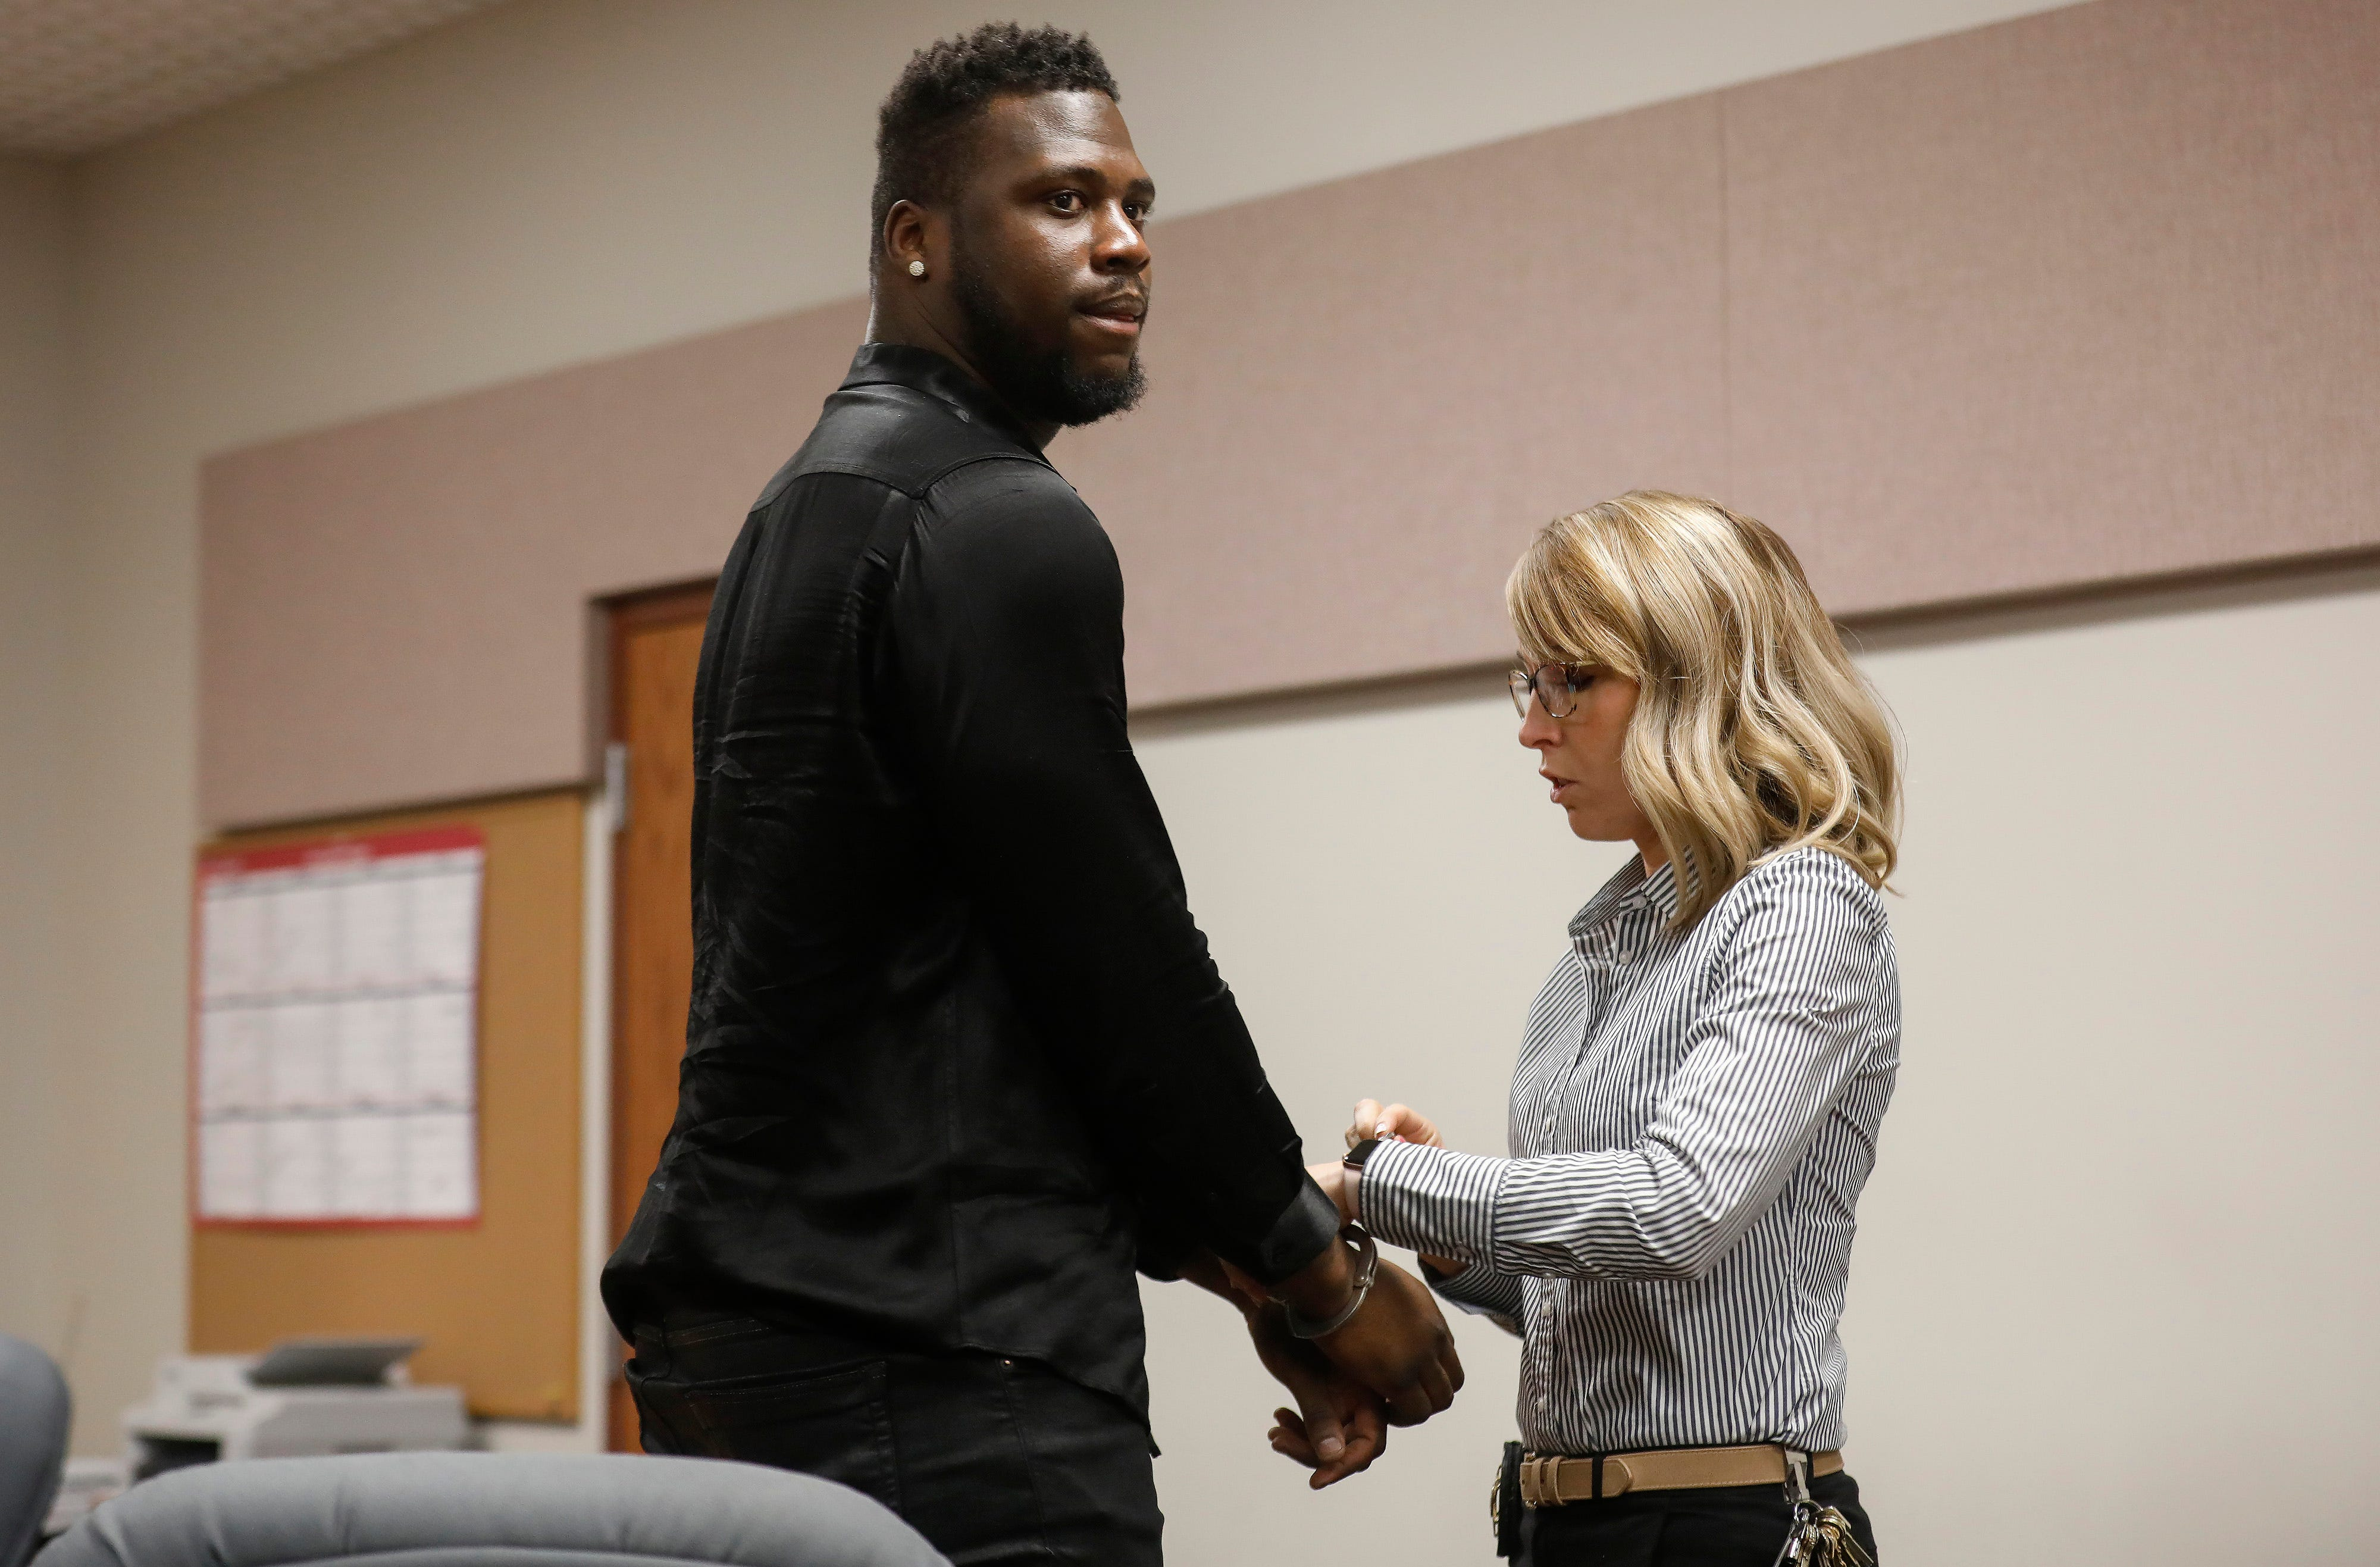 Dorial Green-Beckham is handcuffed by a bailiff after he was sentenced to 90 days in jail for probation violation in a prior DWI case on Friday, March 8, 2019.